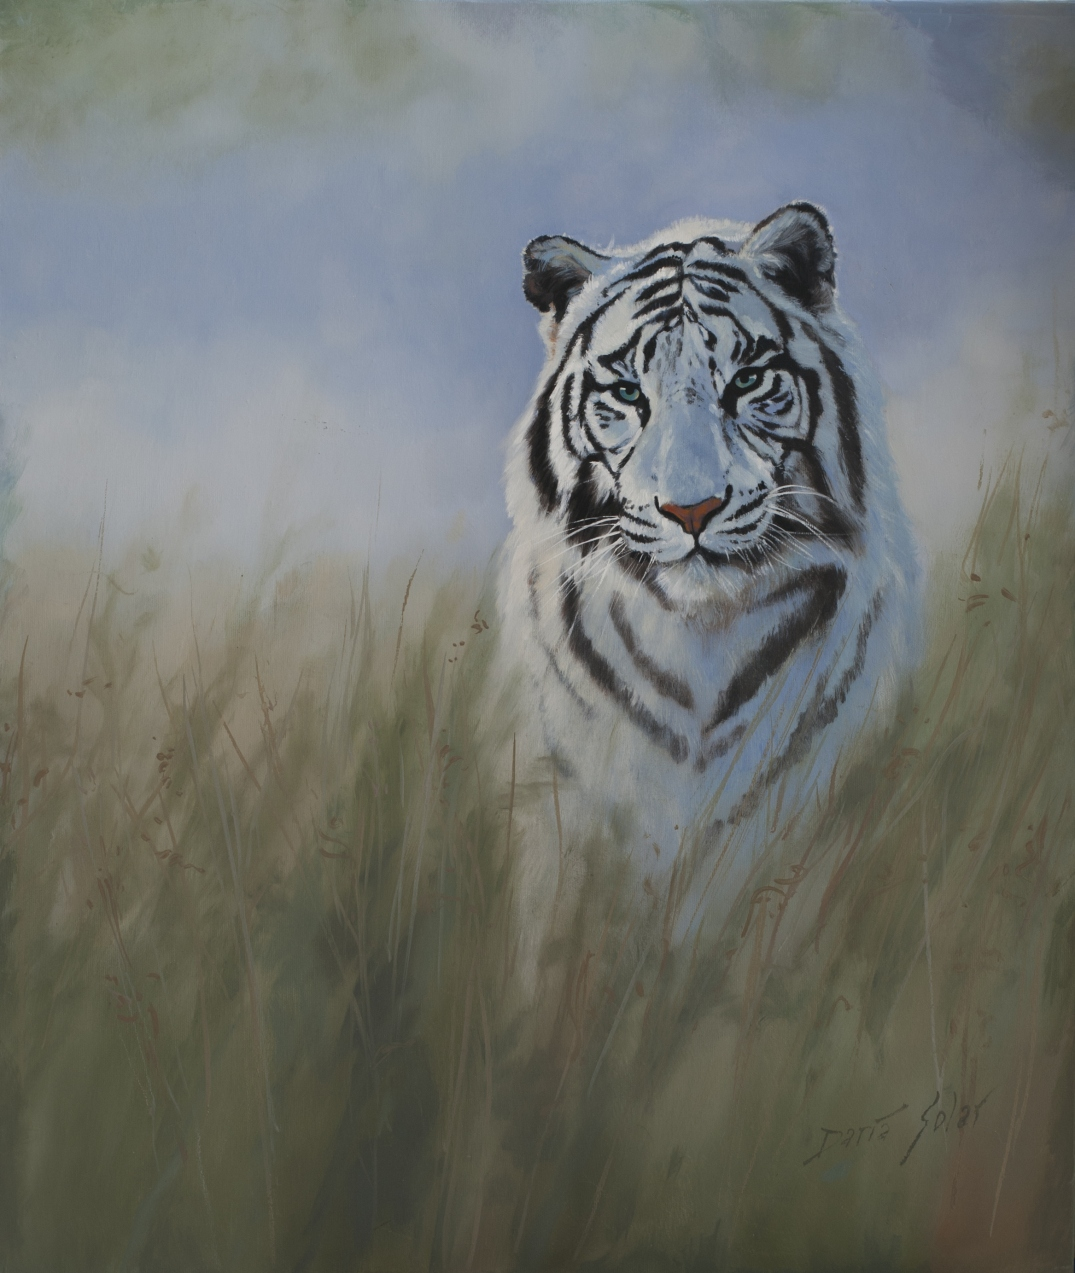 Tigress by Daria Solar 50x60 oil on canvas